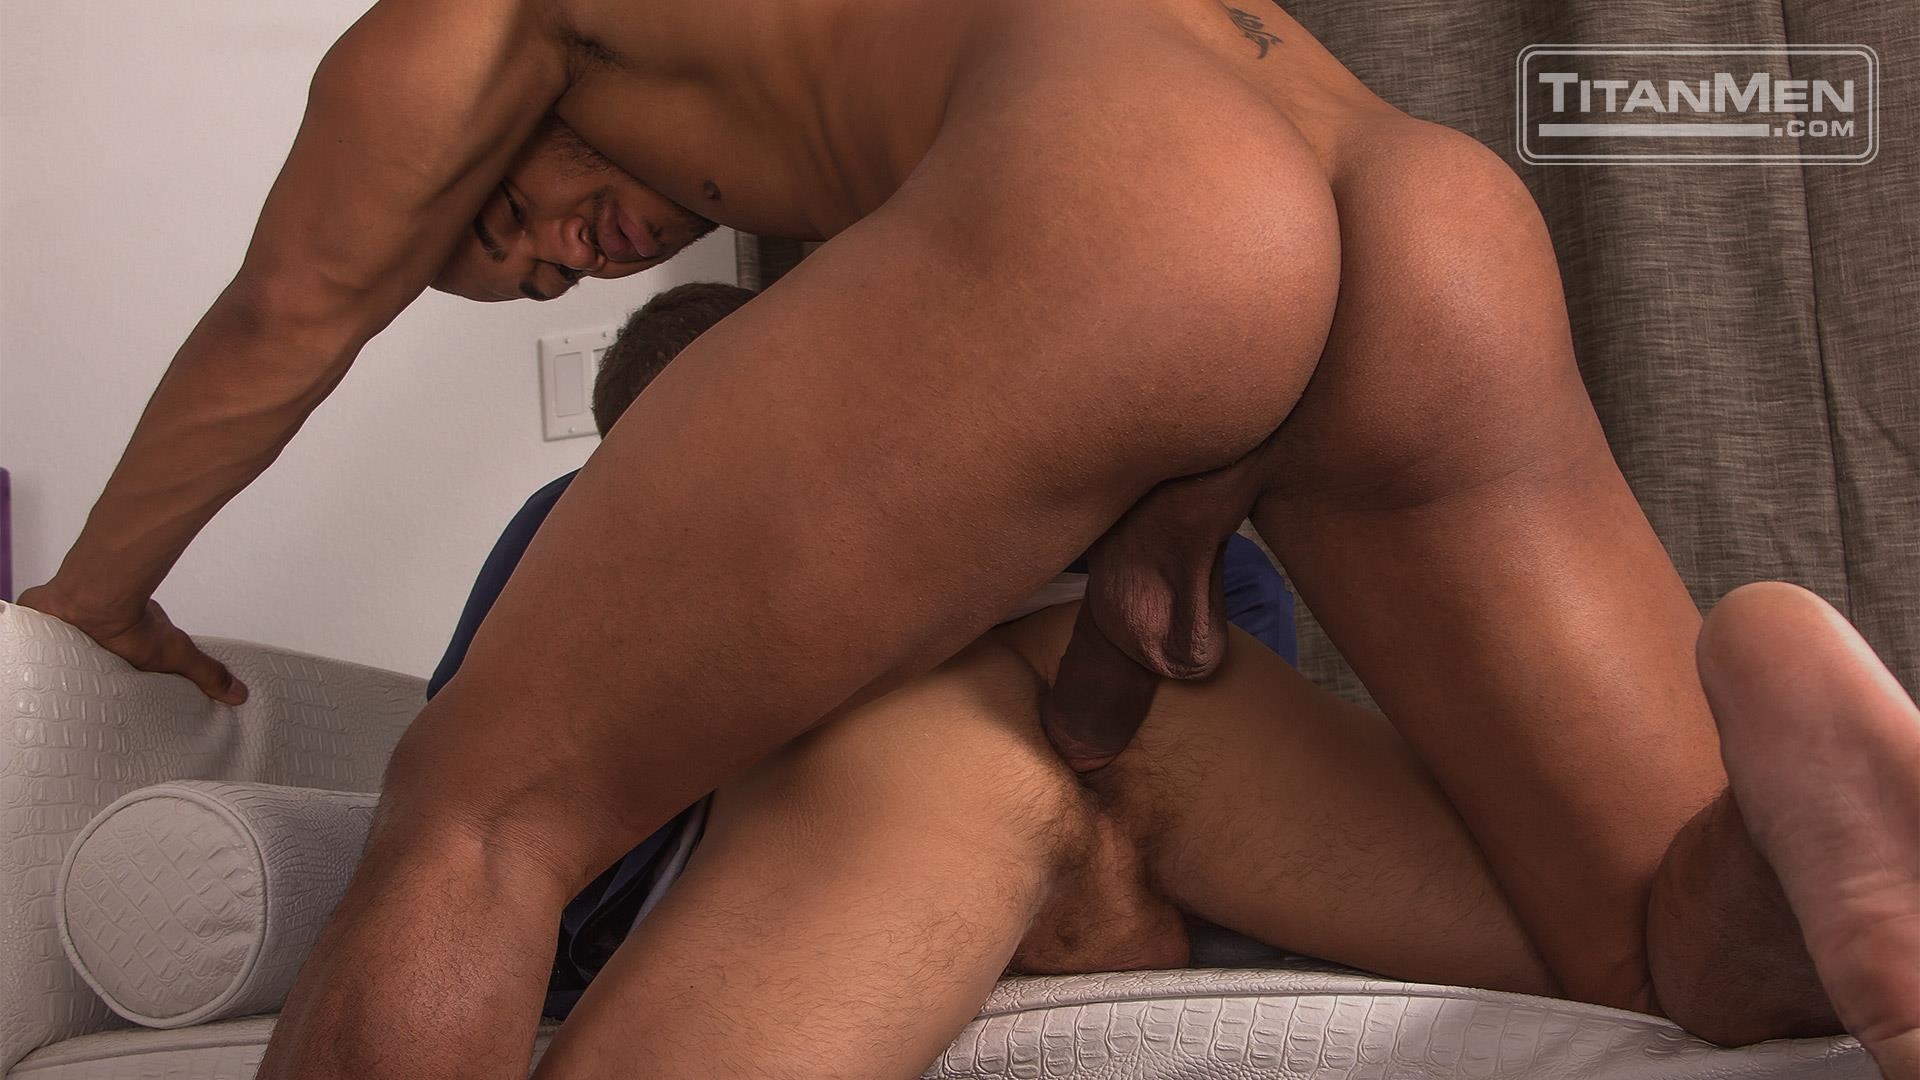 Titan Men Jason Vario and Alex Graham Thick Big Black Uncut Cock Free Gay Porn 27 Getting Fucked By A Really Thick Uncut Big Black Cock